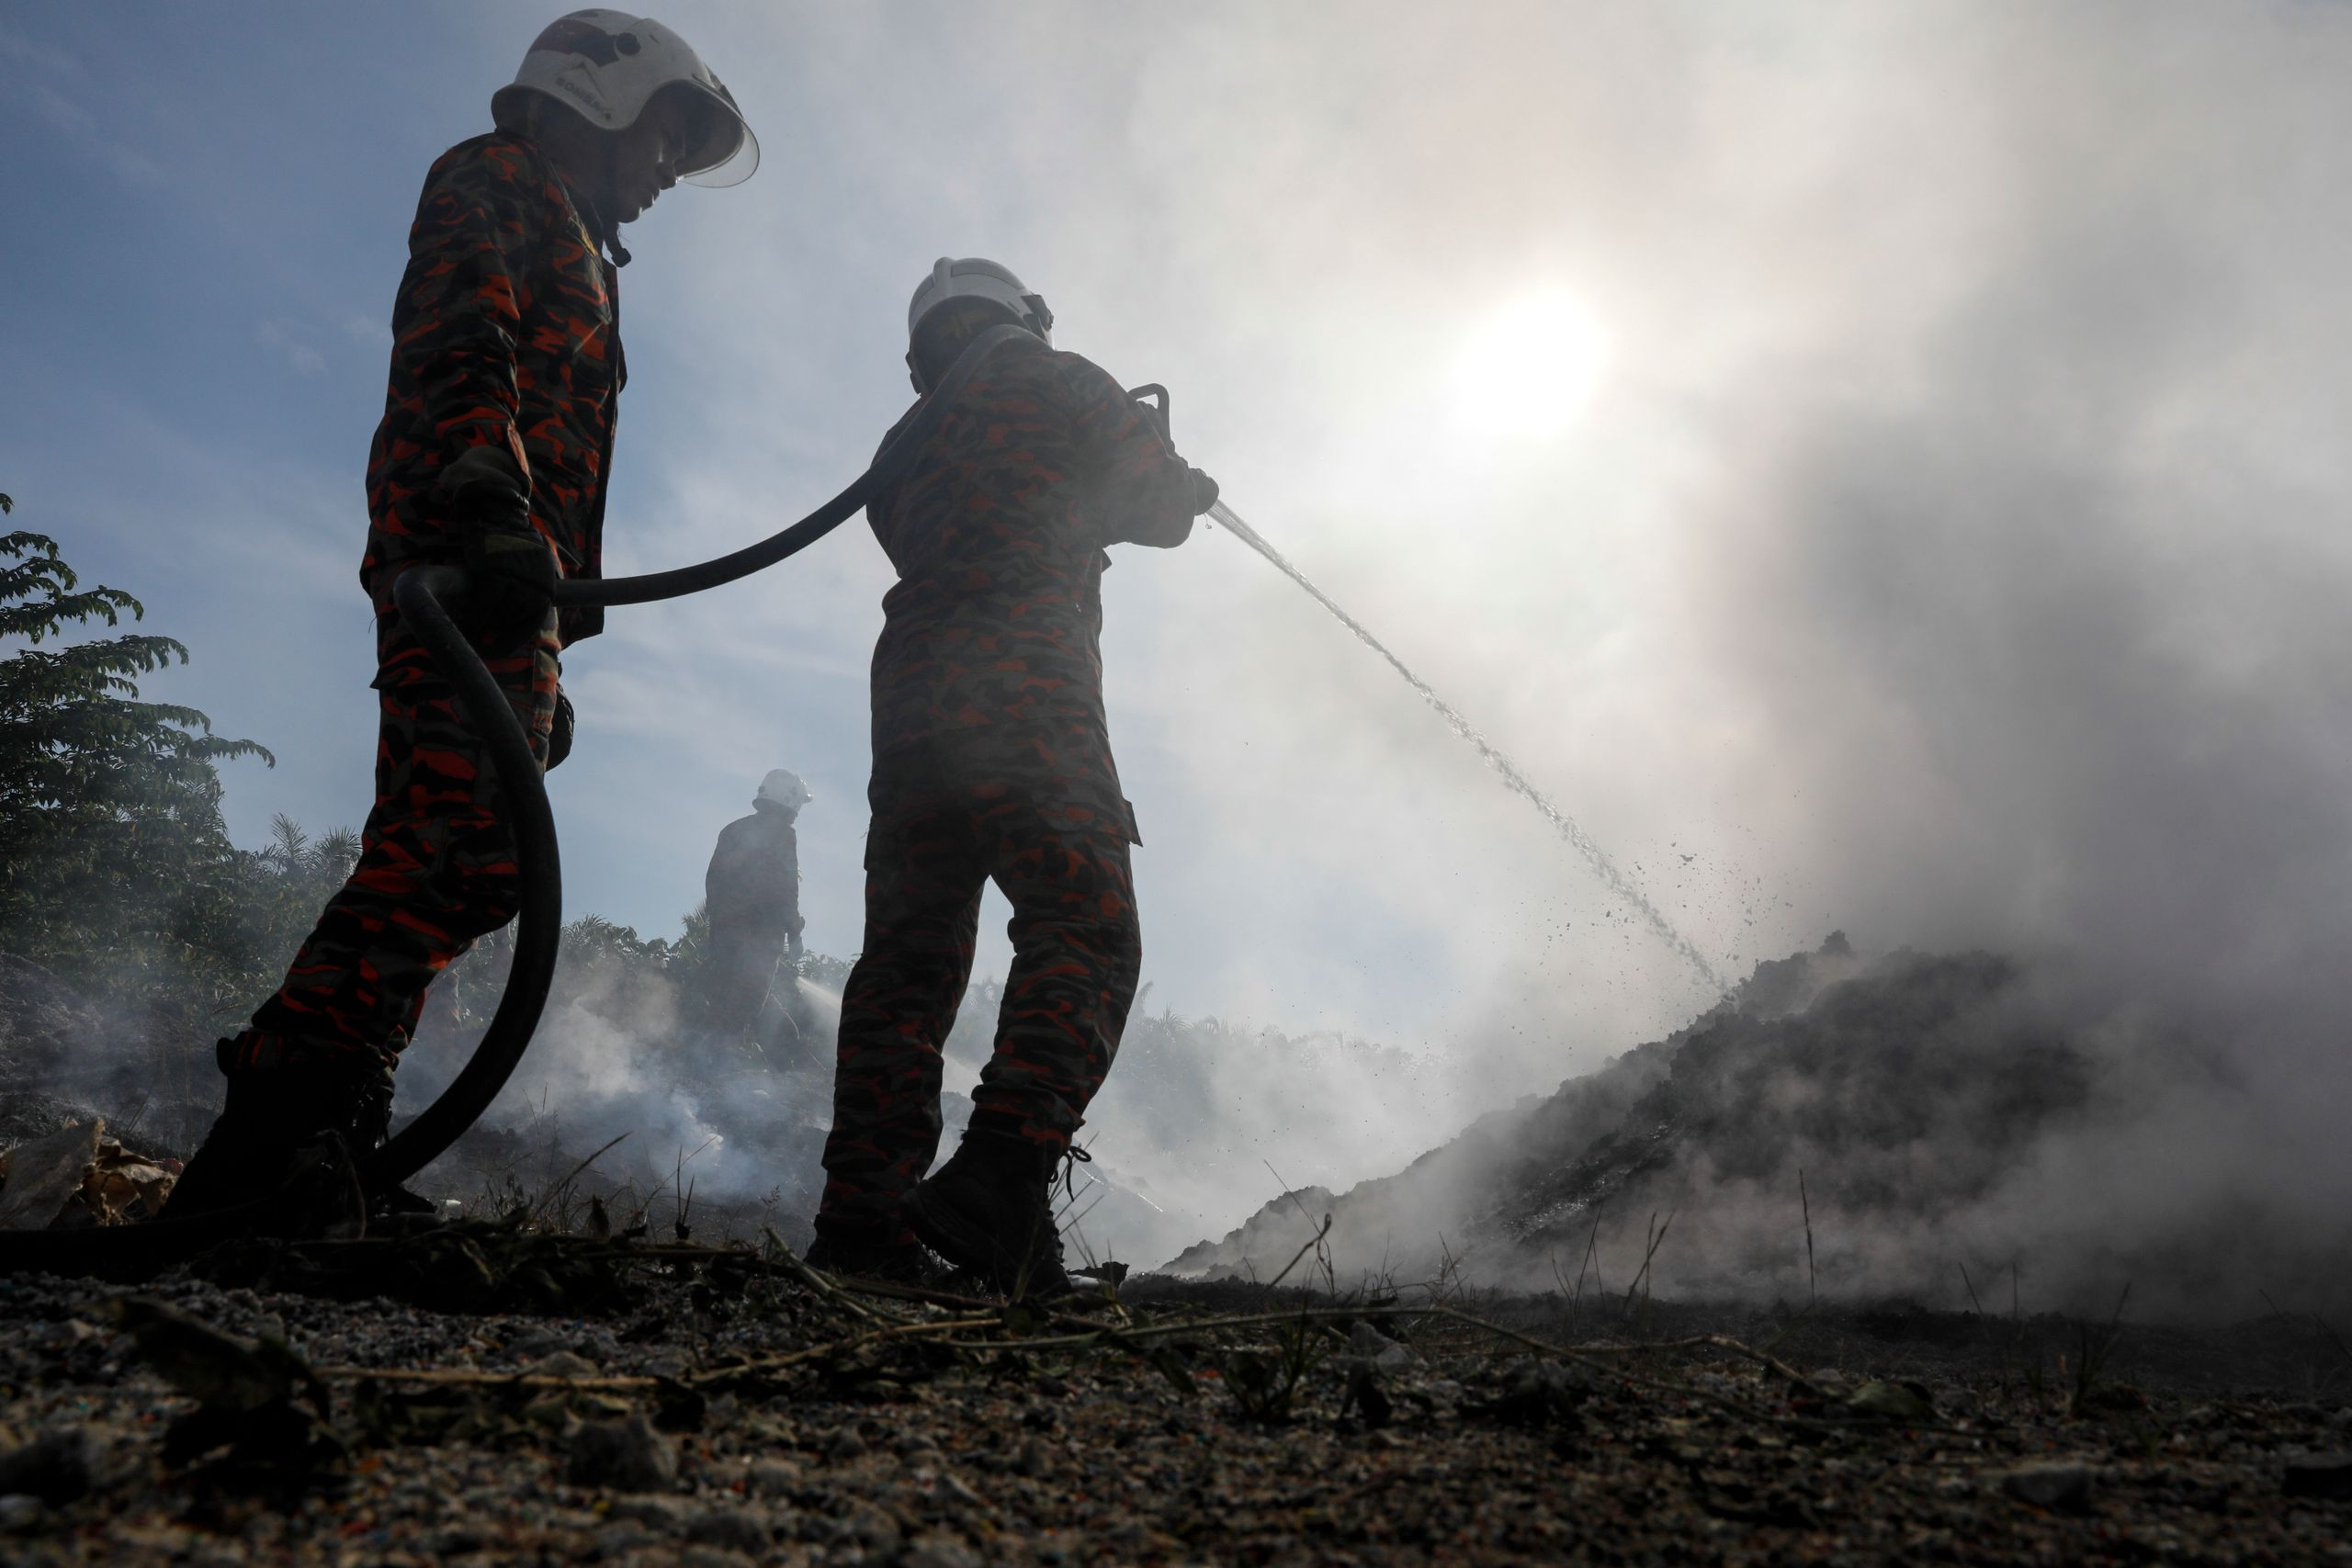 Firemen put out a blaze at a dumpsite on a palm oil plantation near Jenjarom, Feb. 2. Plastic fires are notoriously diff